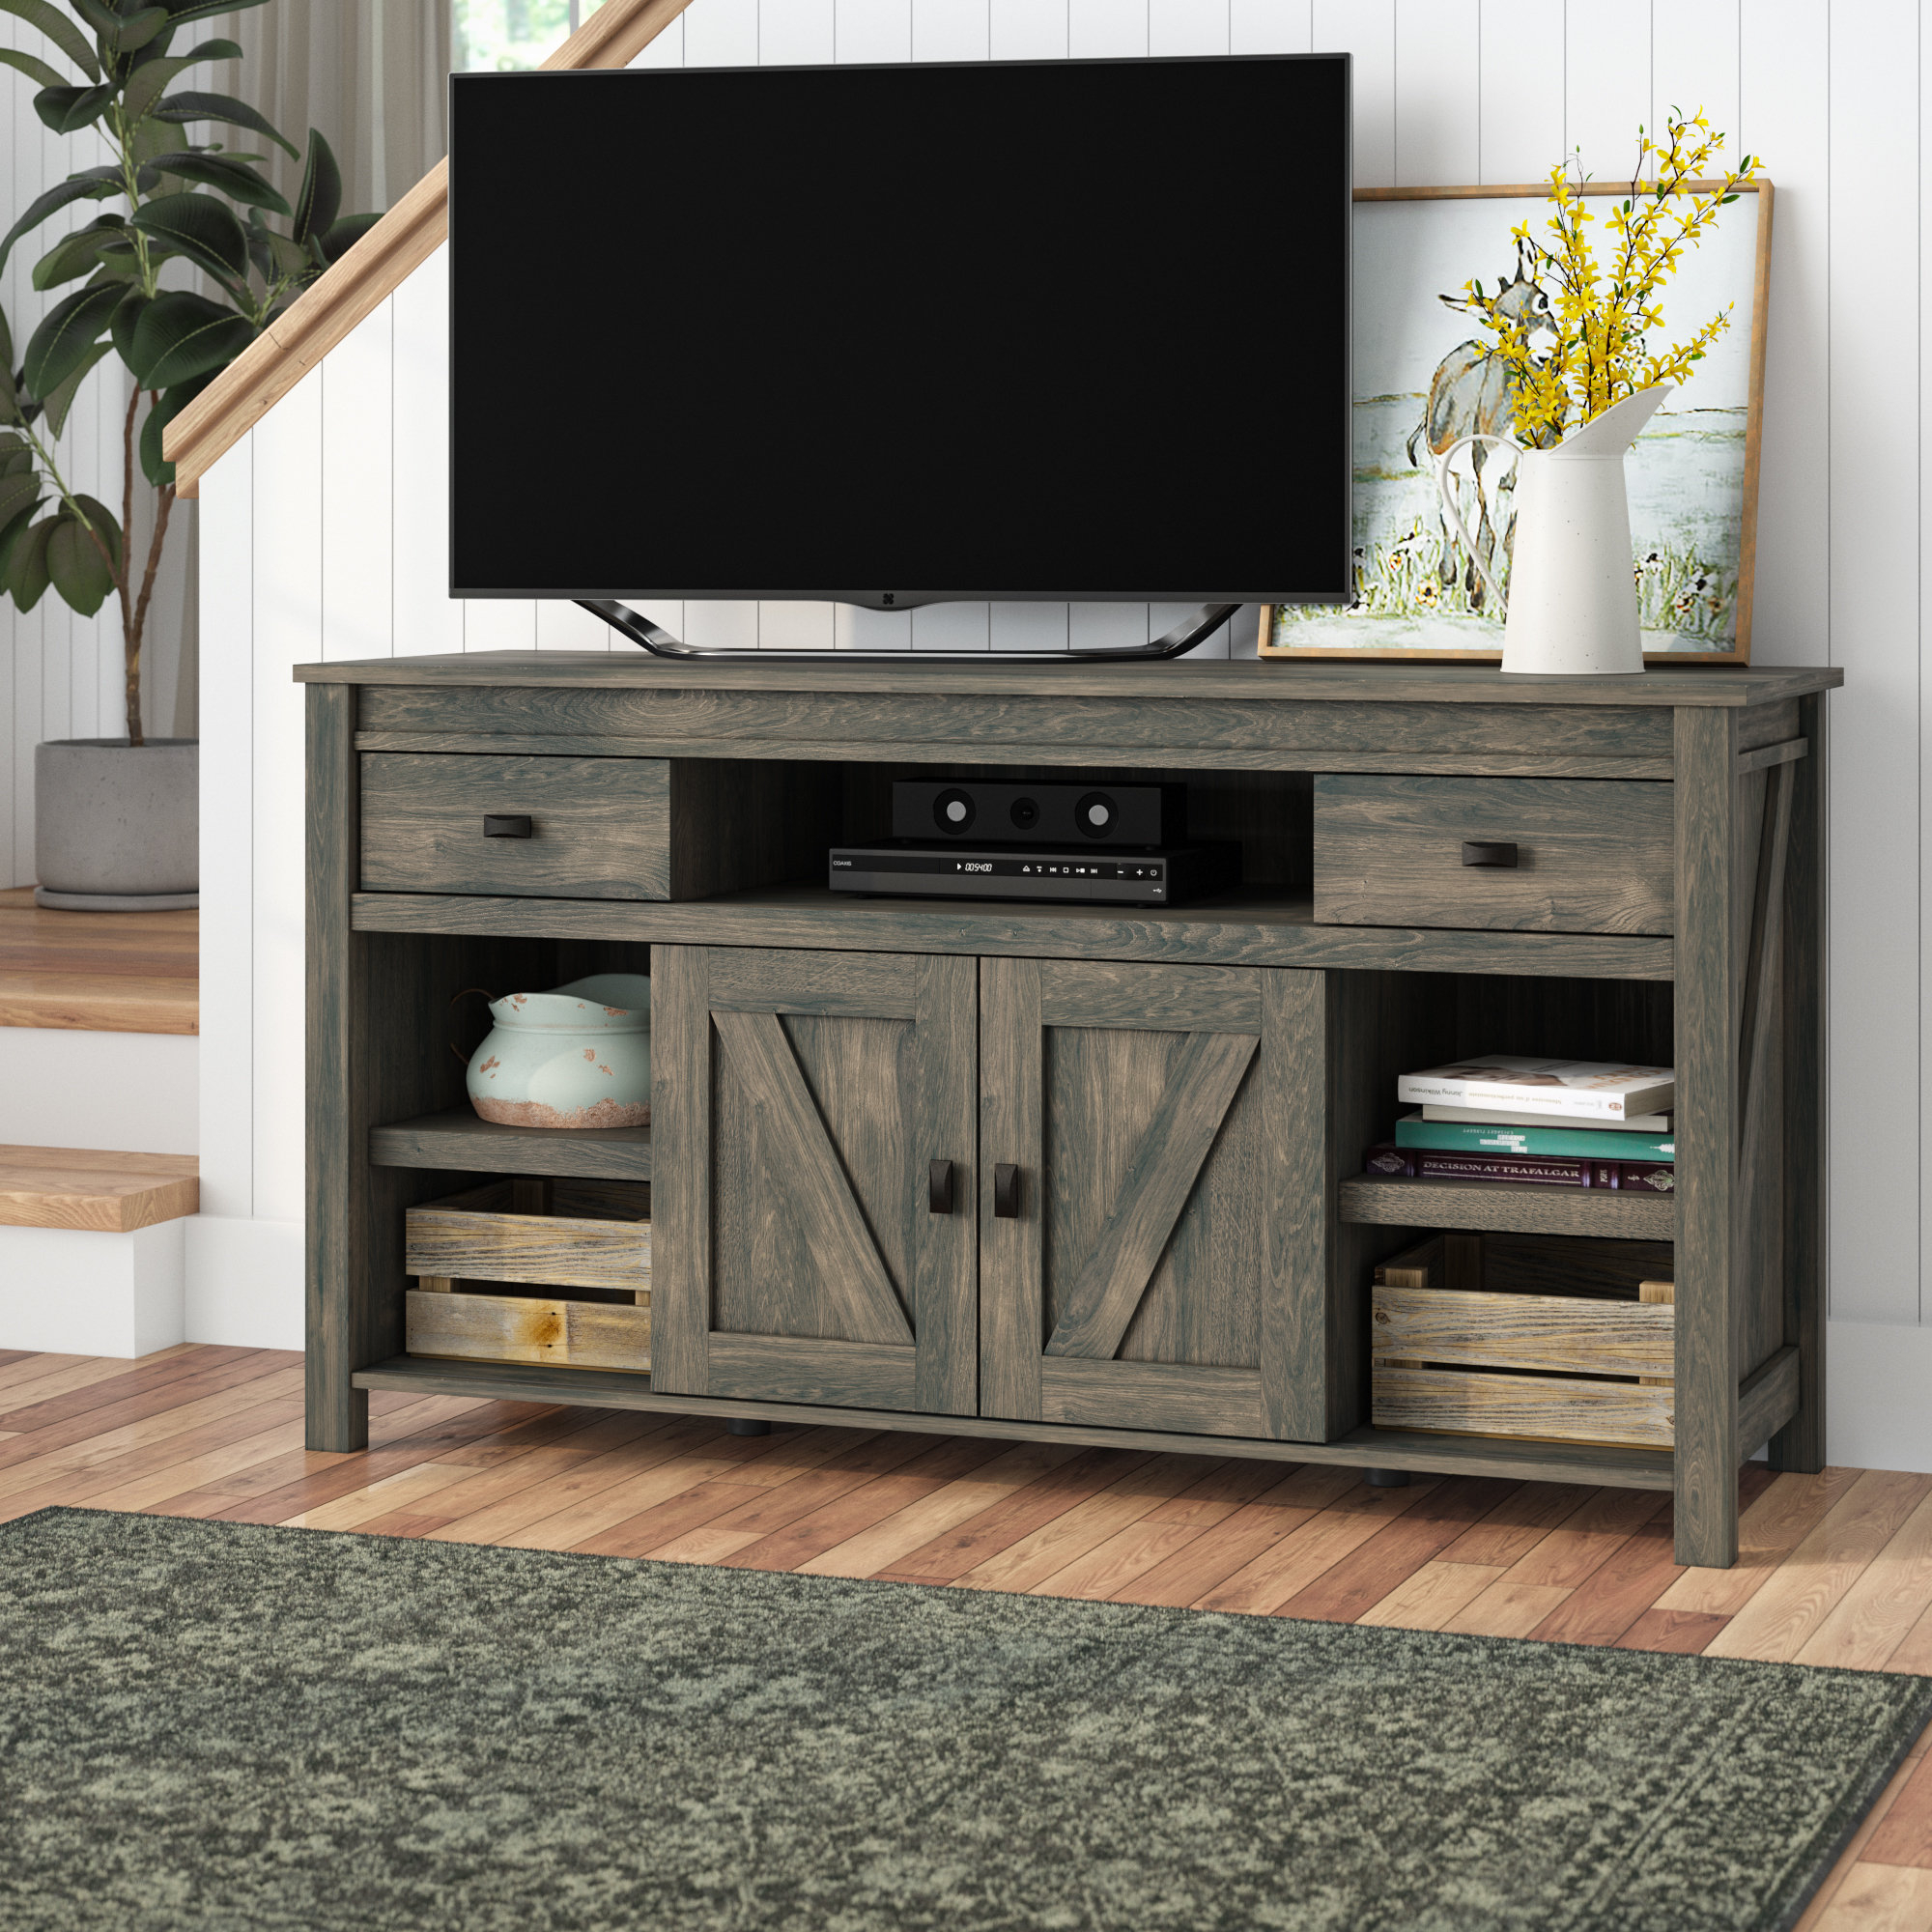 60 64 Inch Tv Stands | Birch Lane In Edwin Black 64 Inch Tv Stands (Photo 2 of 30)